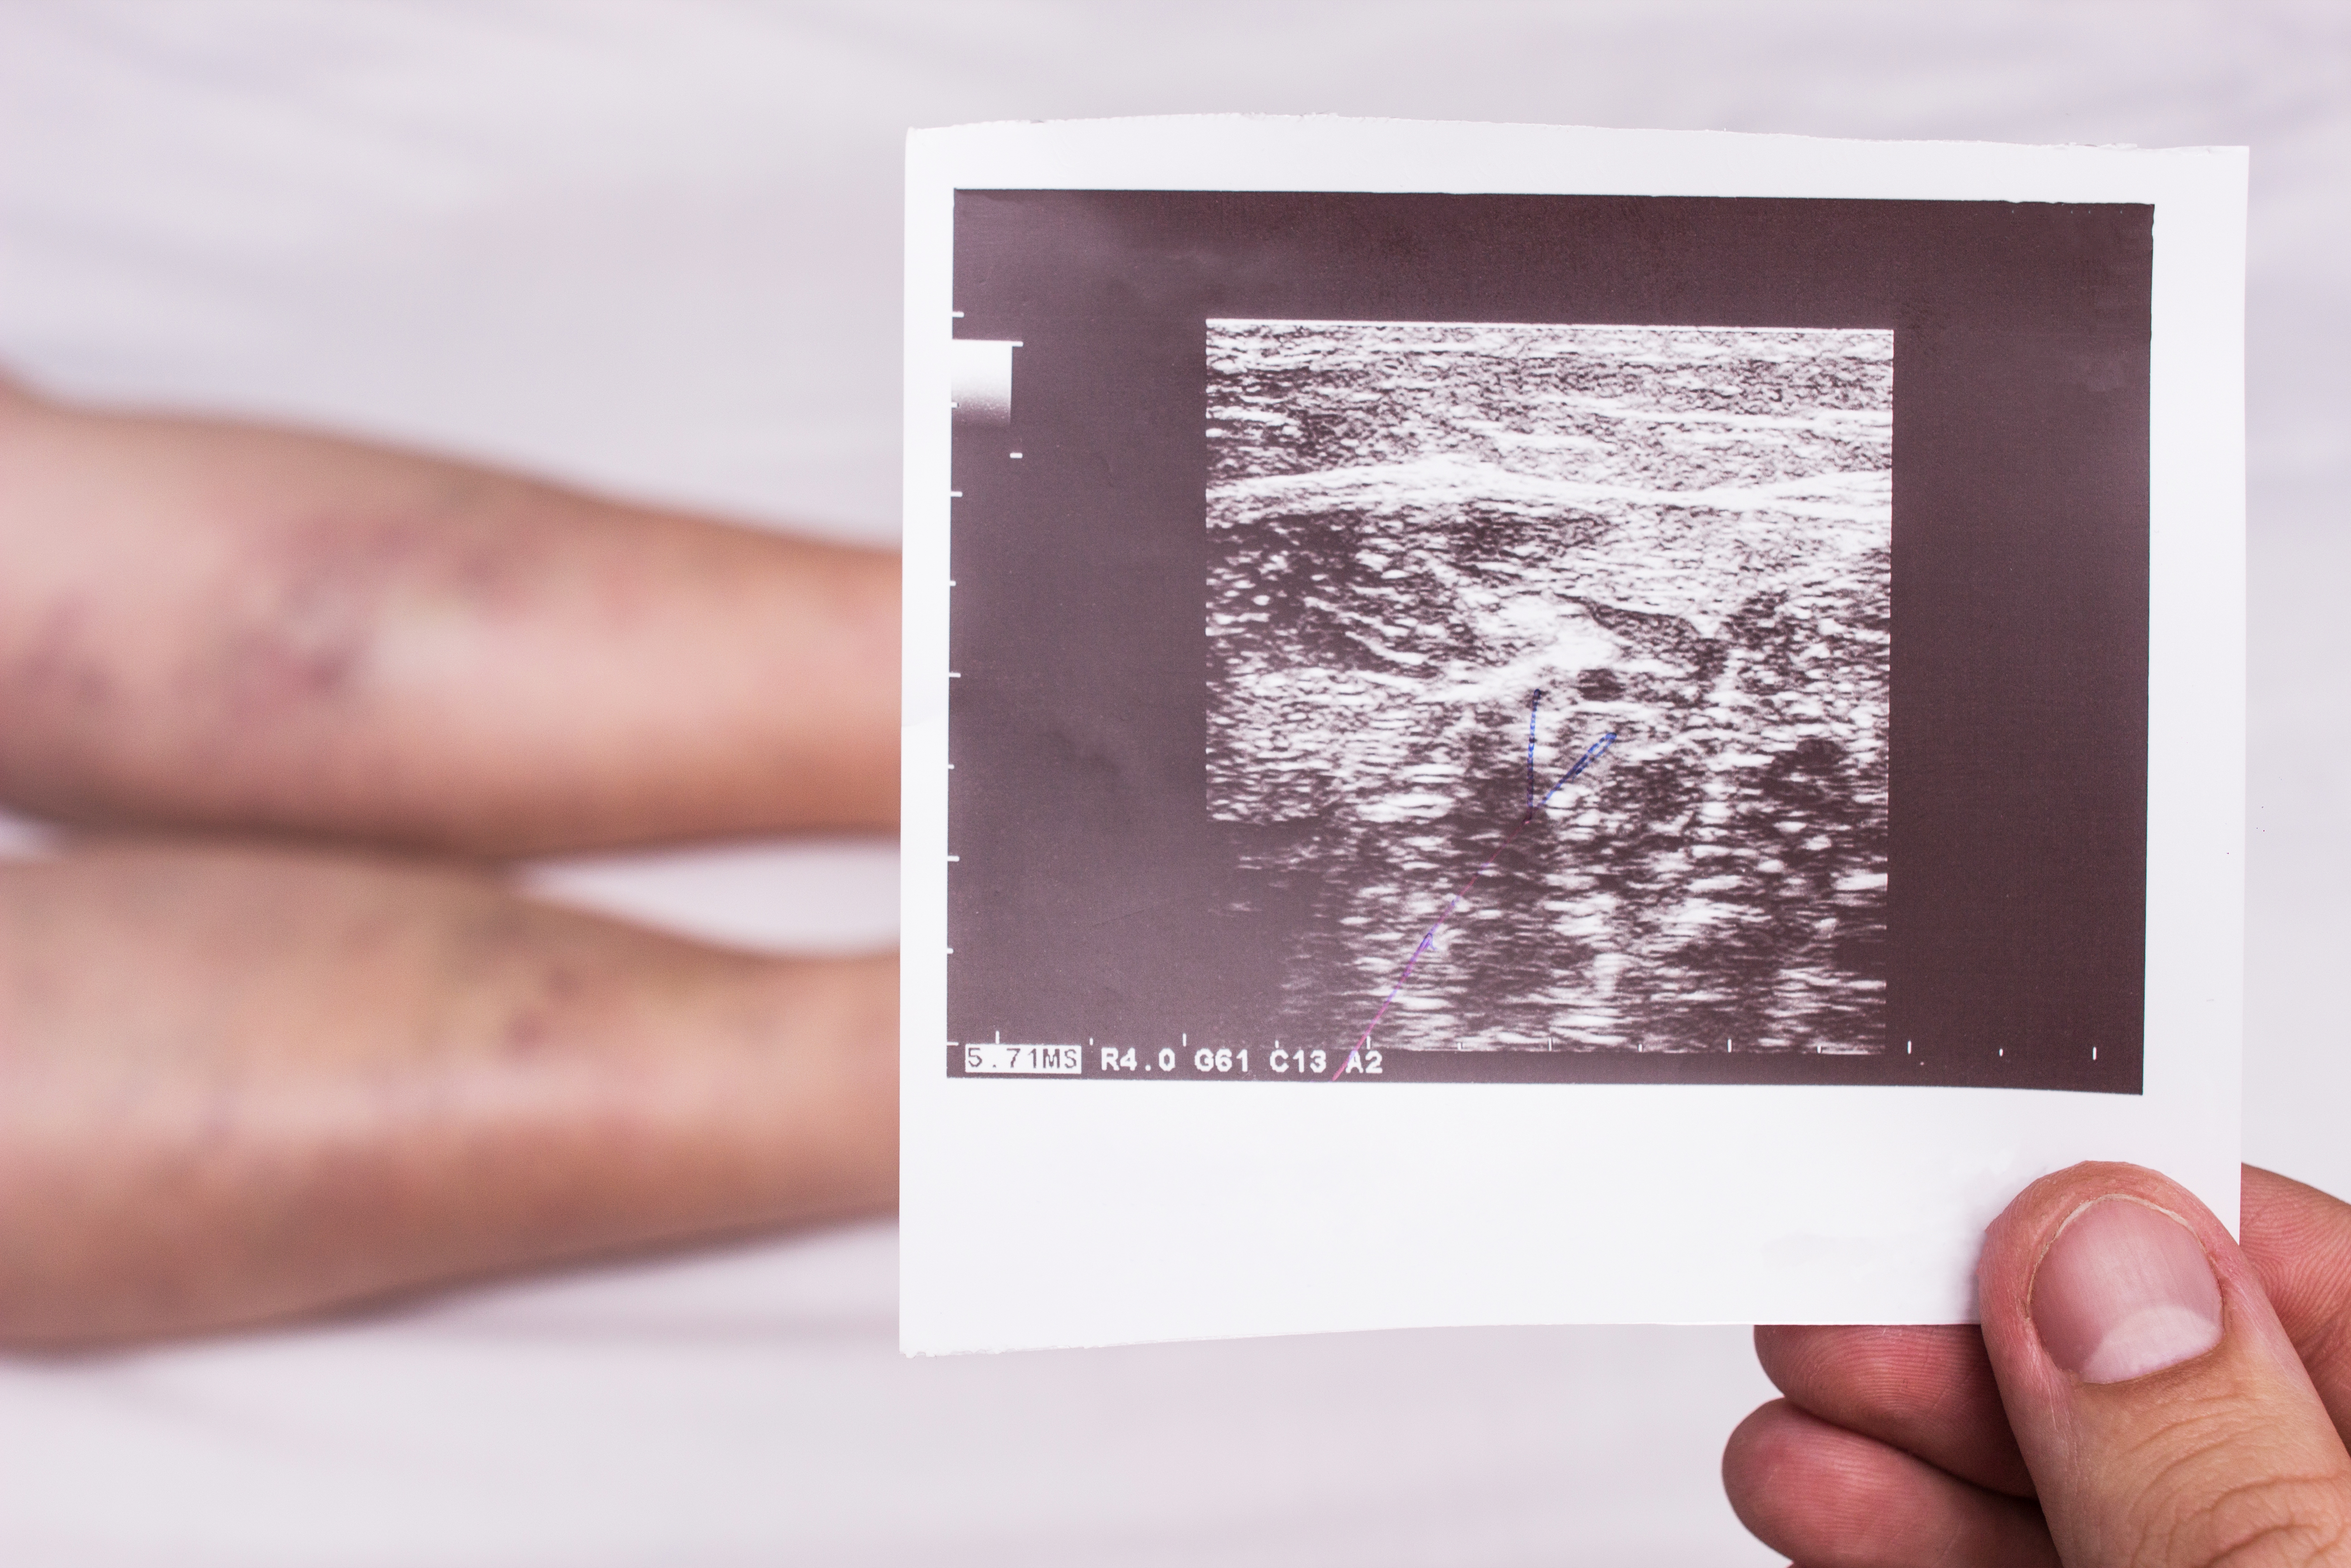 Vascular doctor holds ultrasound picture showing deep vein thrombosis in elderly woman patient's legs